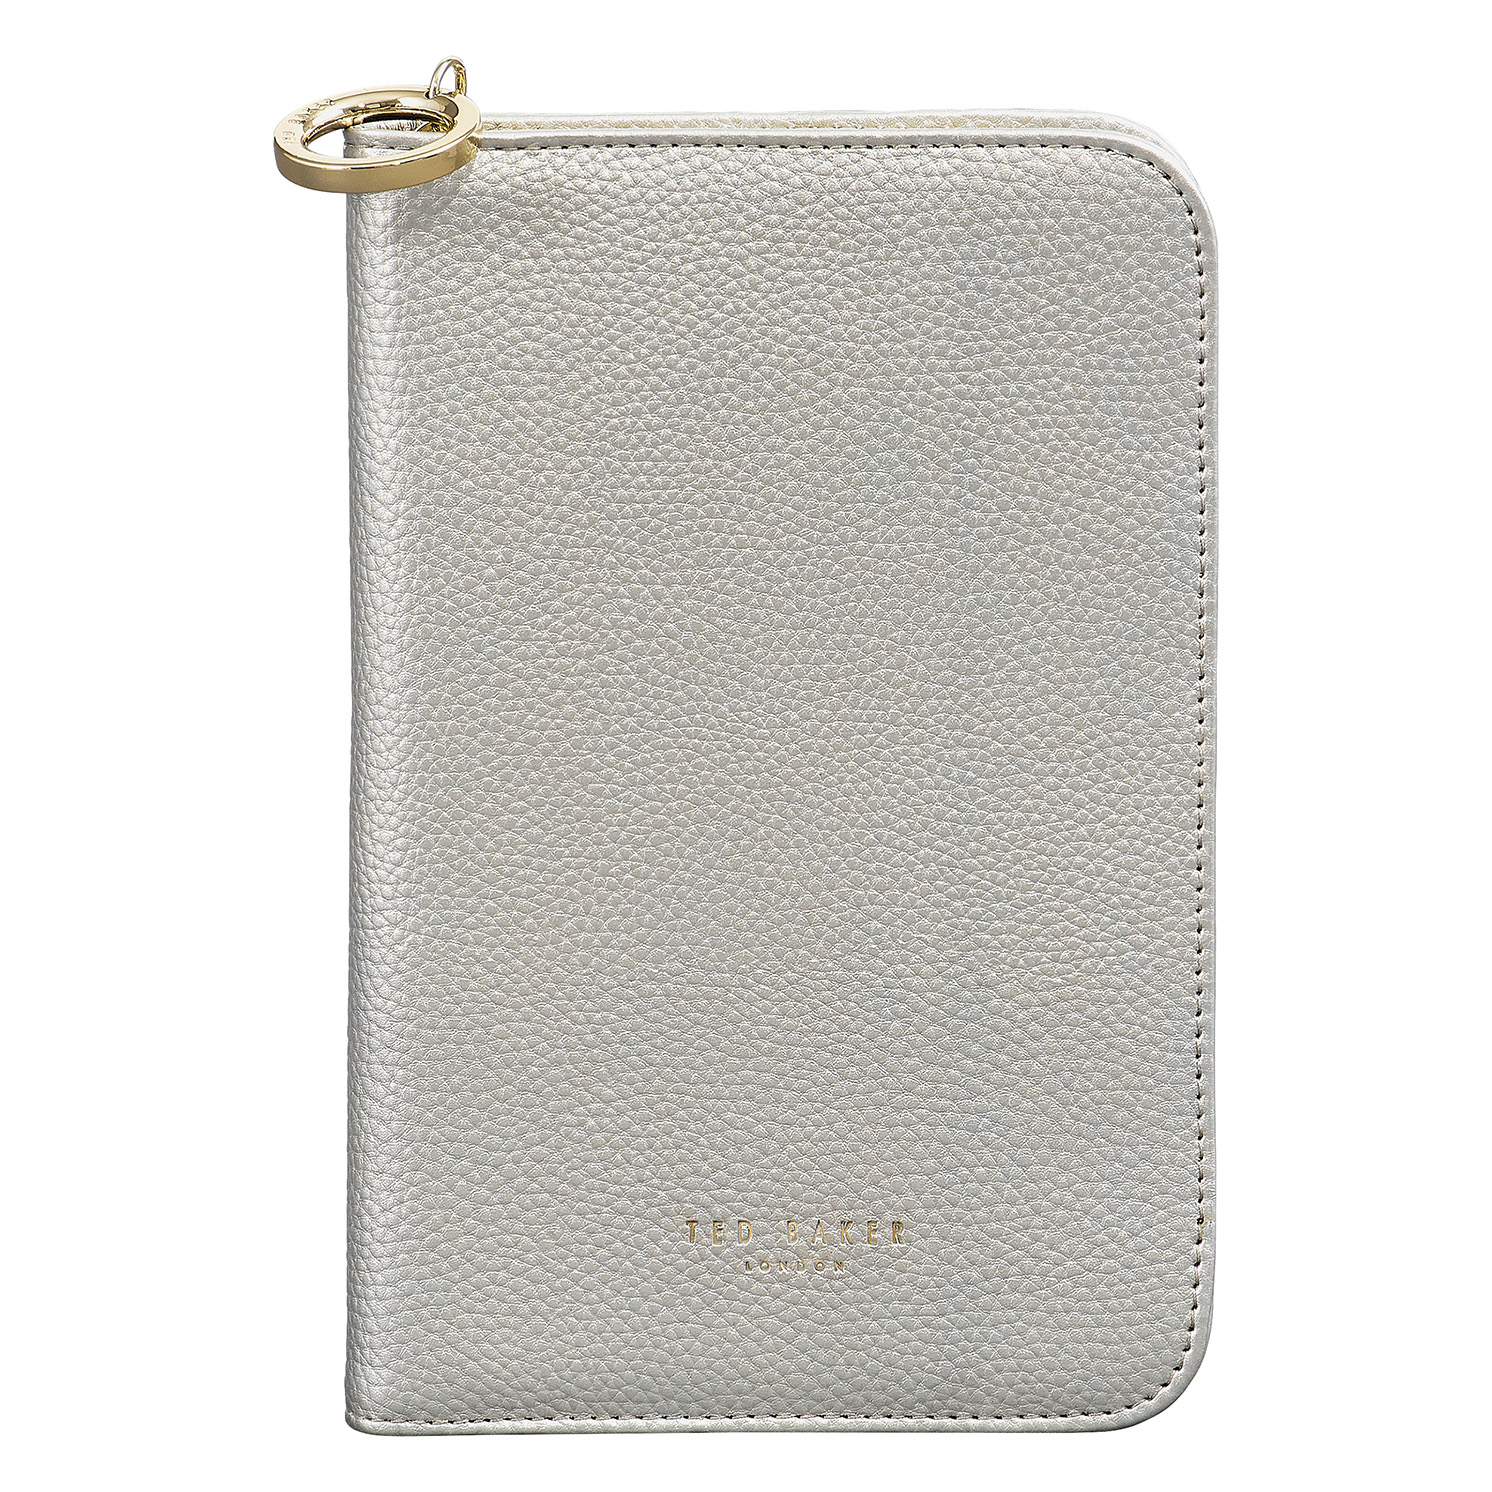 Ted Baker – Silver Textured Faux Leather Travel Organiser with Pen